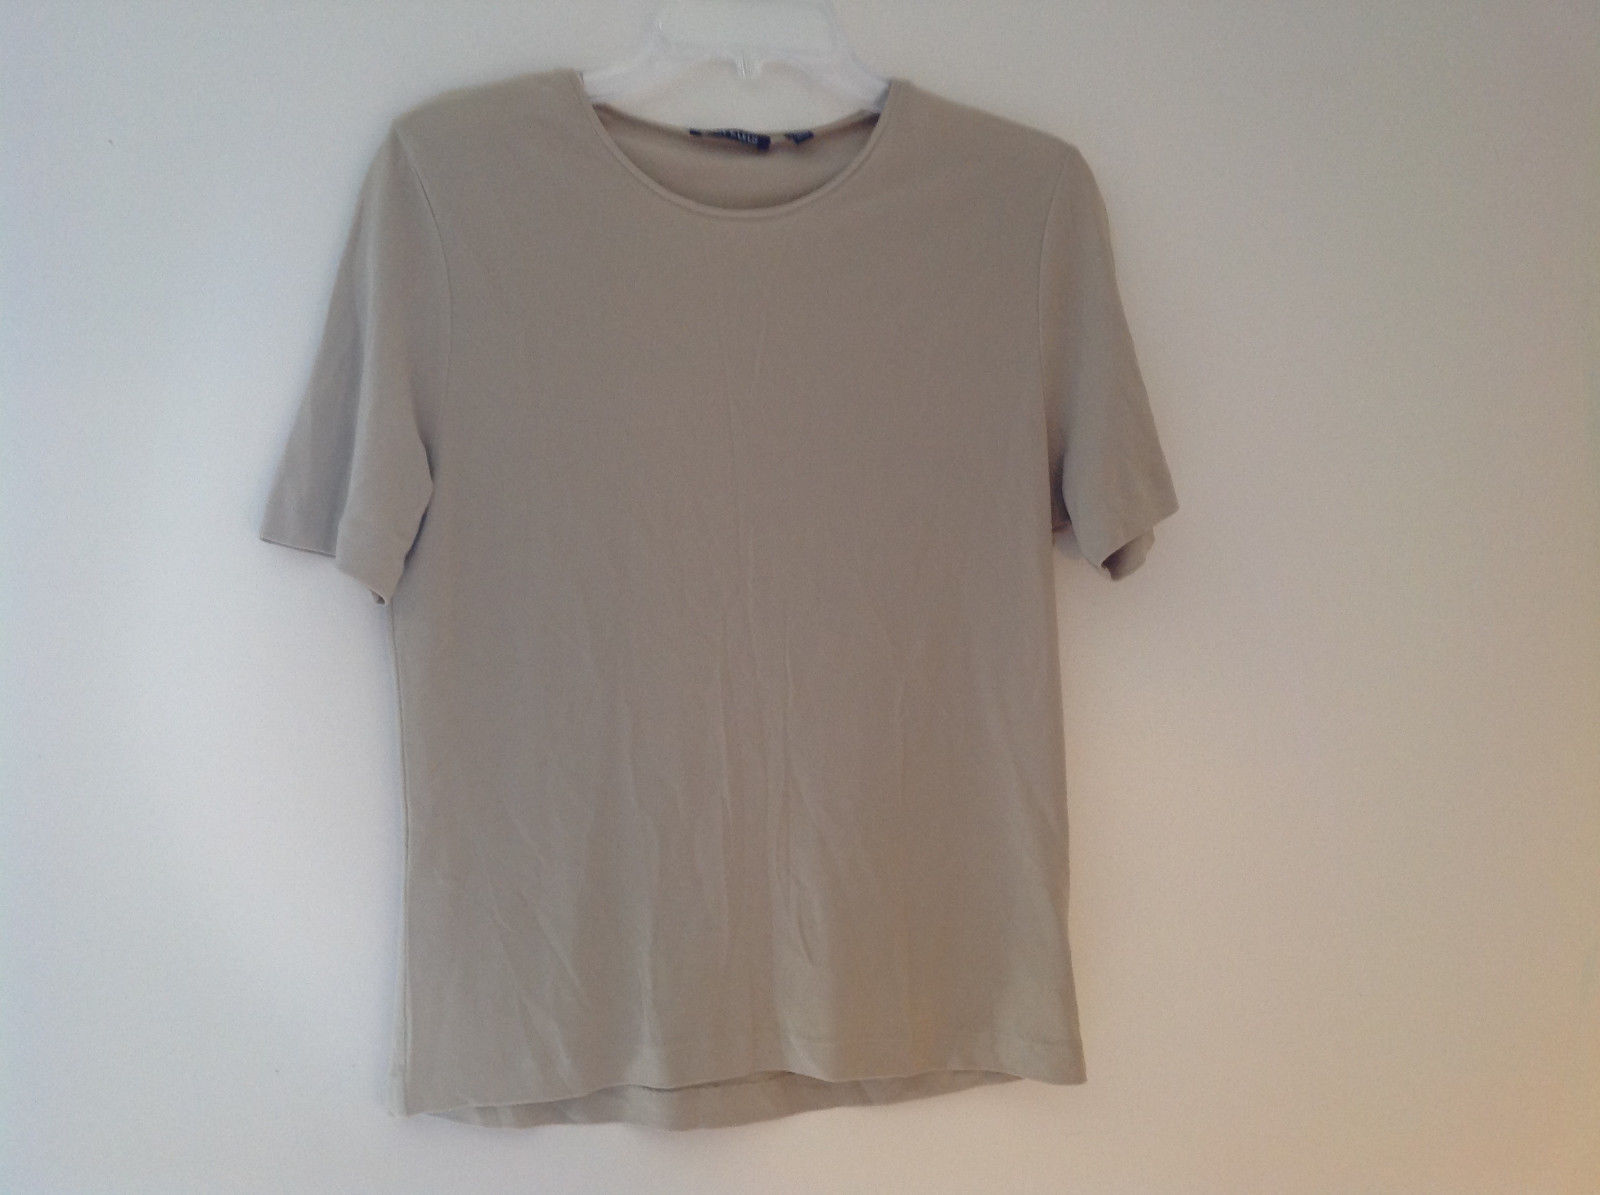 Anne Klein Tan Stretchy Short Sleeve Shirt A Little Sheer Size Medium